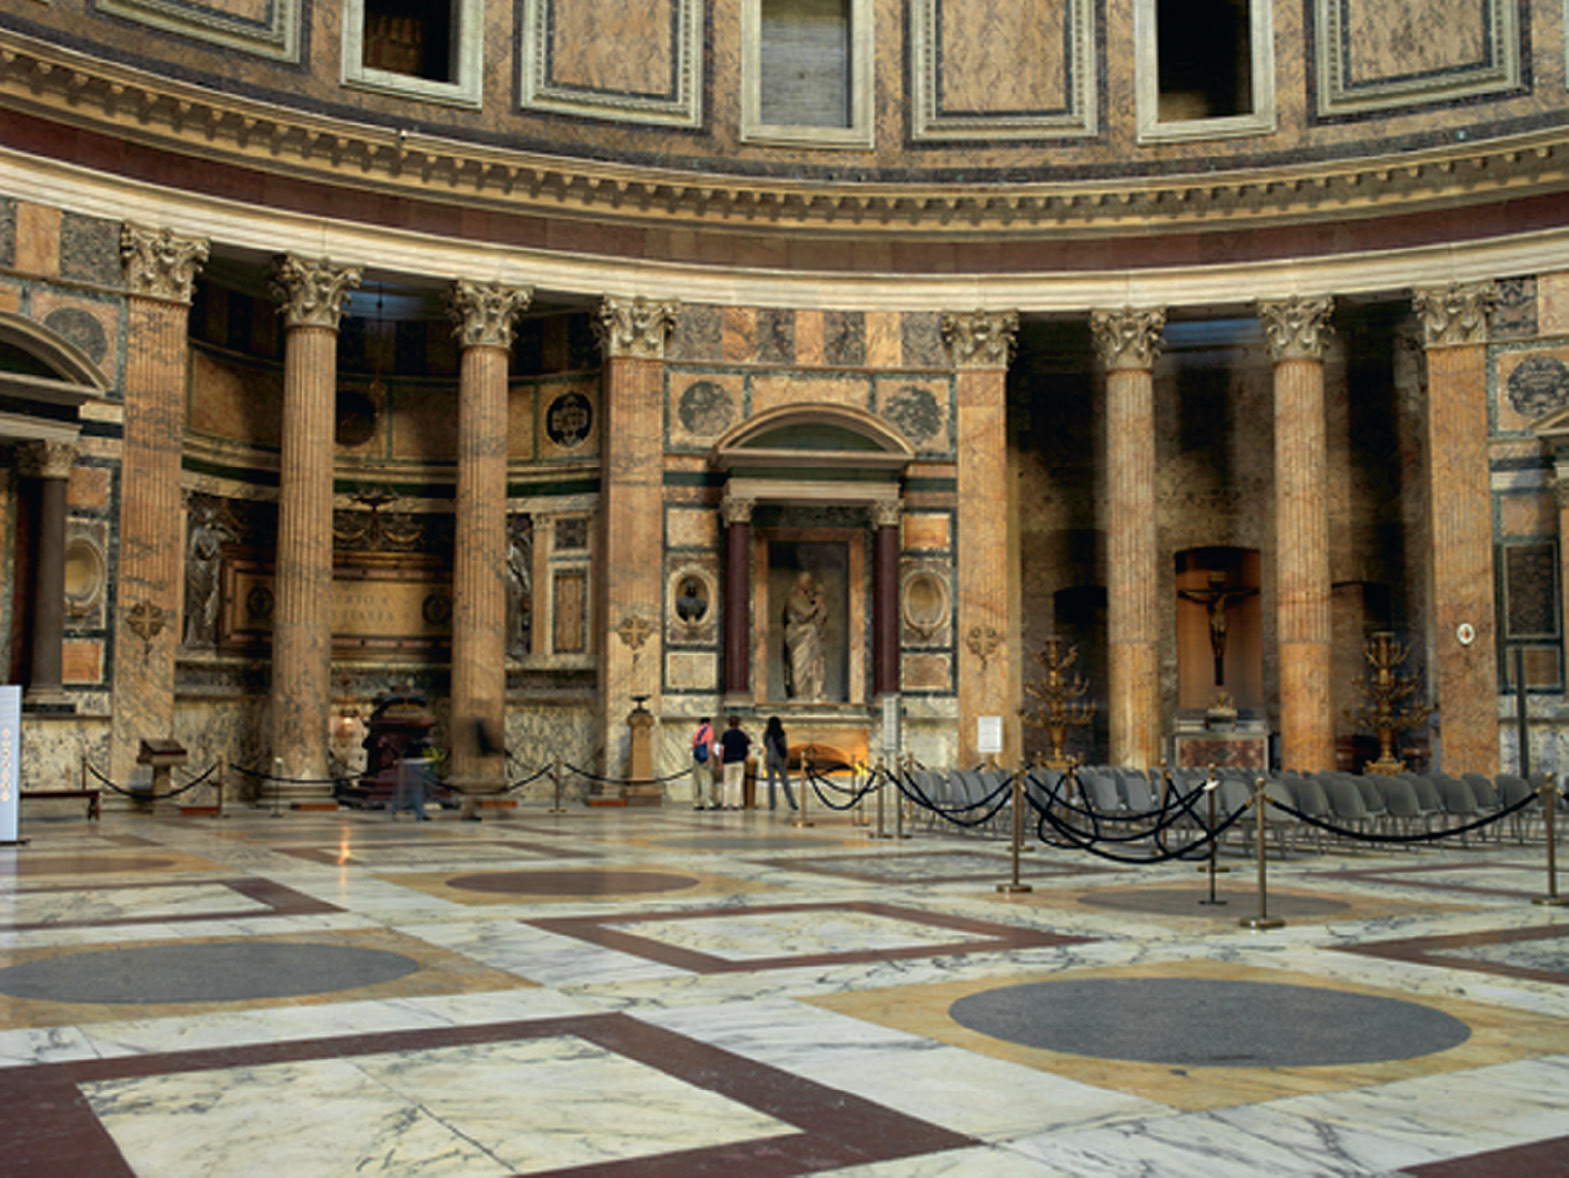 Introduction (One) - The Pantheon